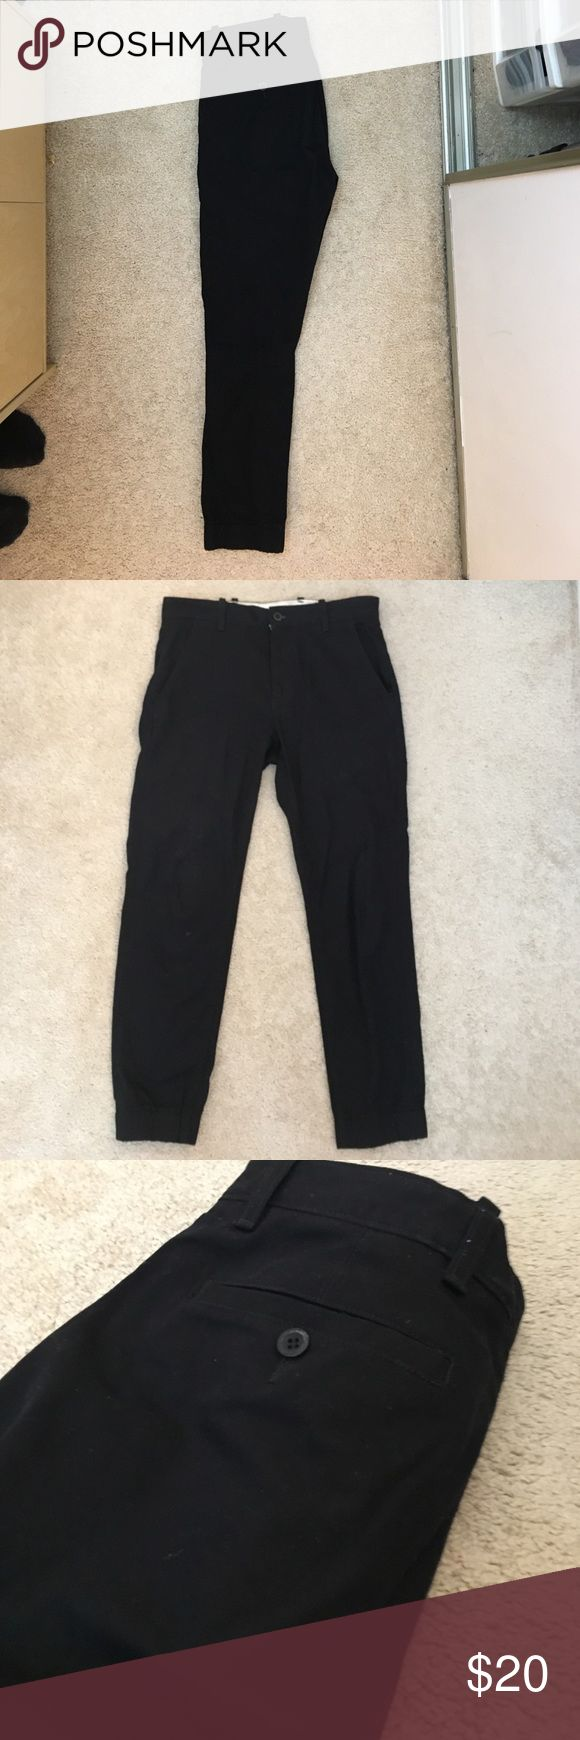 Levi's Men's chino joggers size 29 x 30 black Used but in excellent condition. Worn a handful of times and kept in a smoke free and pet free household. Did not washed yet and is not faded at all. Levi's Pants Chinos & Khakis